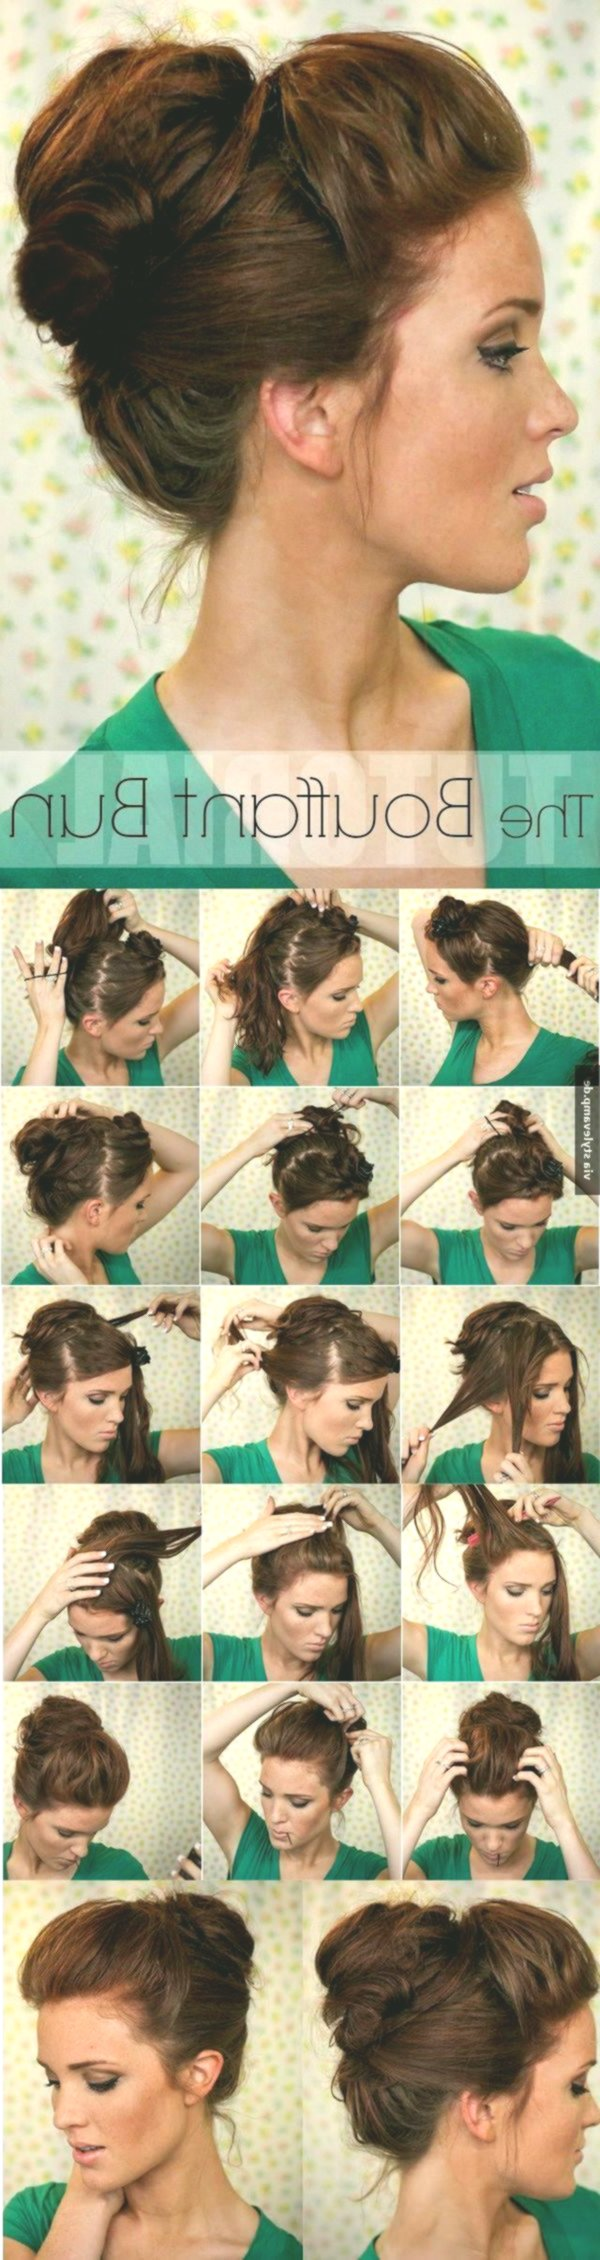 Excellent Fast Hairstyles For Long Hair Instruction Pattern-Elegant Fast Hairstyles For Long Hair Instruction Collection